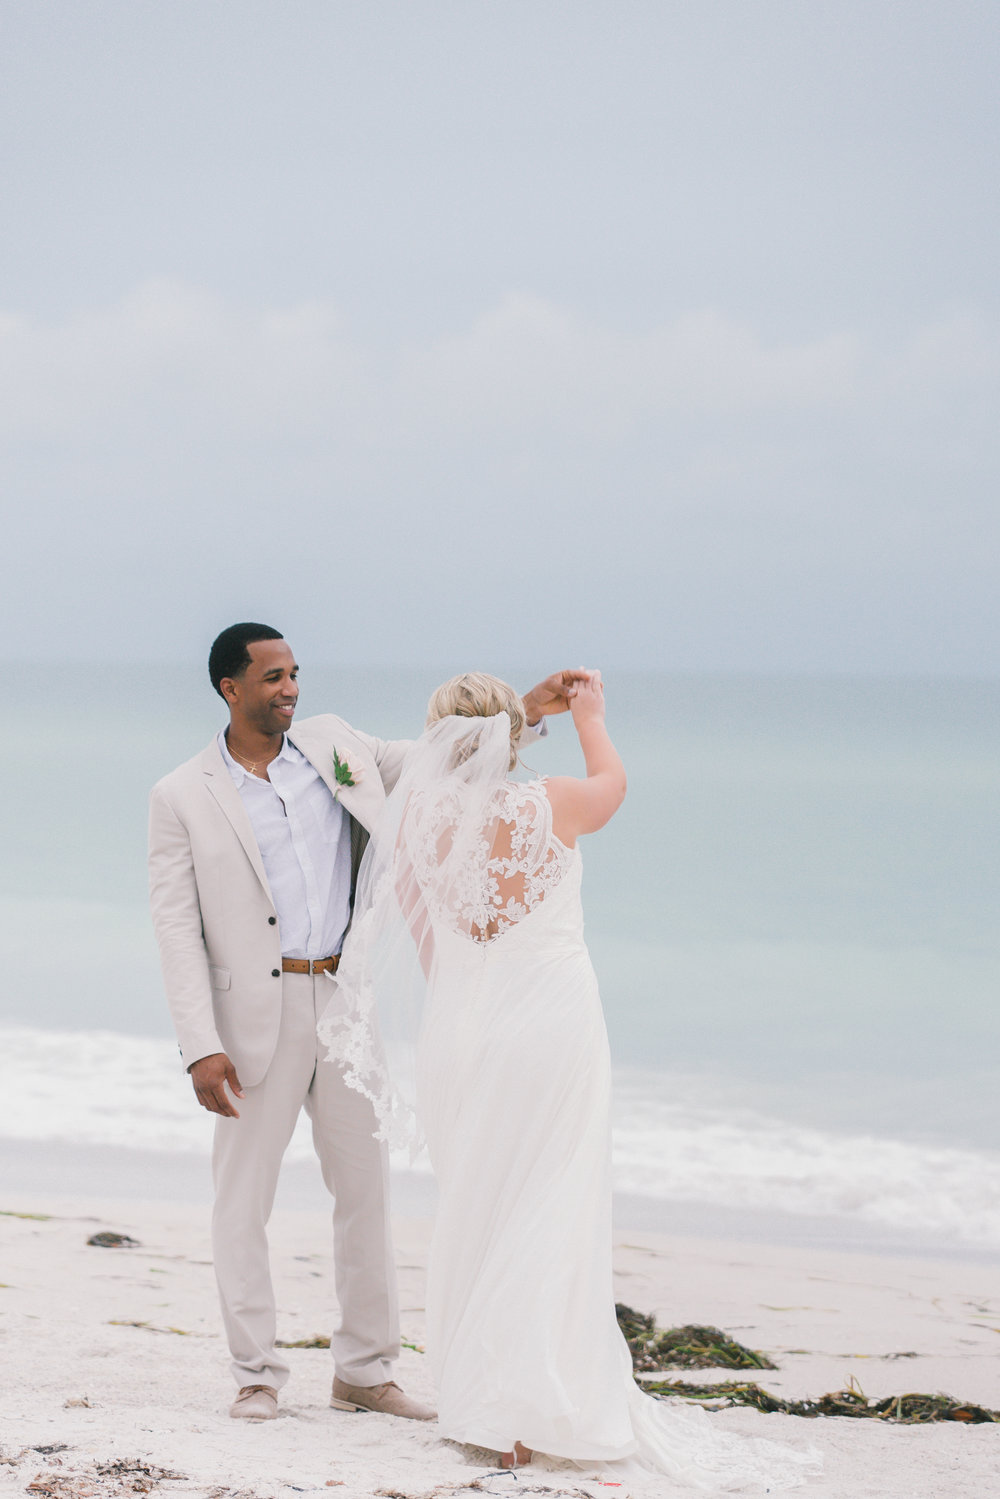 Anna Maria Island Beach Wedding Ceremony | Gorgeous beach wedding in ...